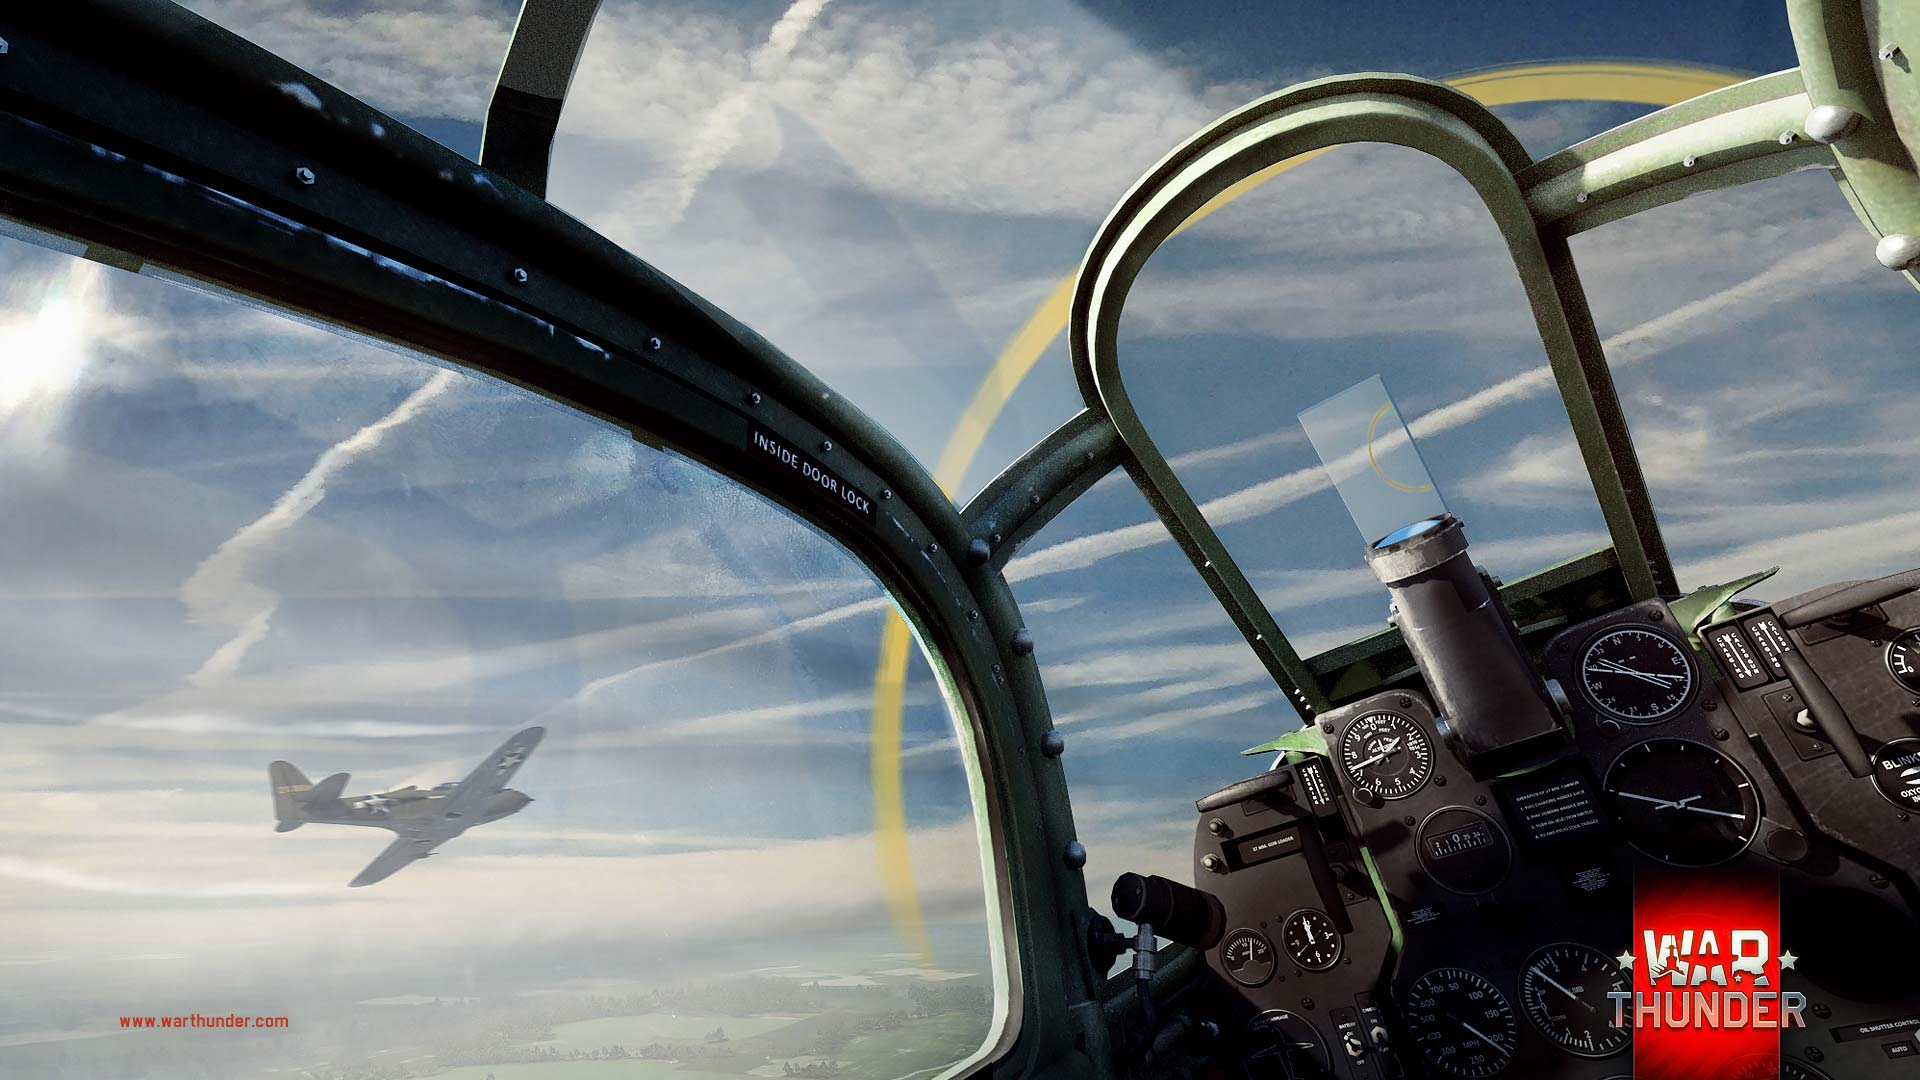 War Thunder: Planes engaging in a dogfight.